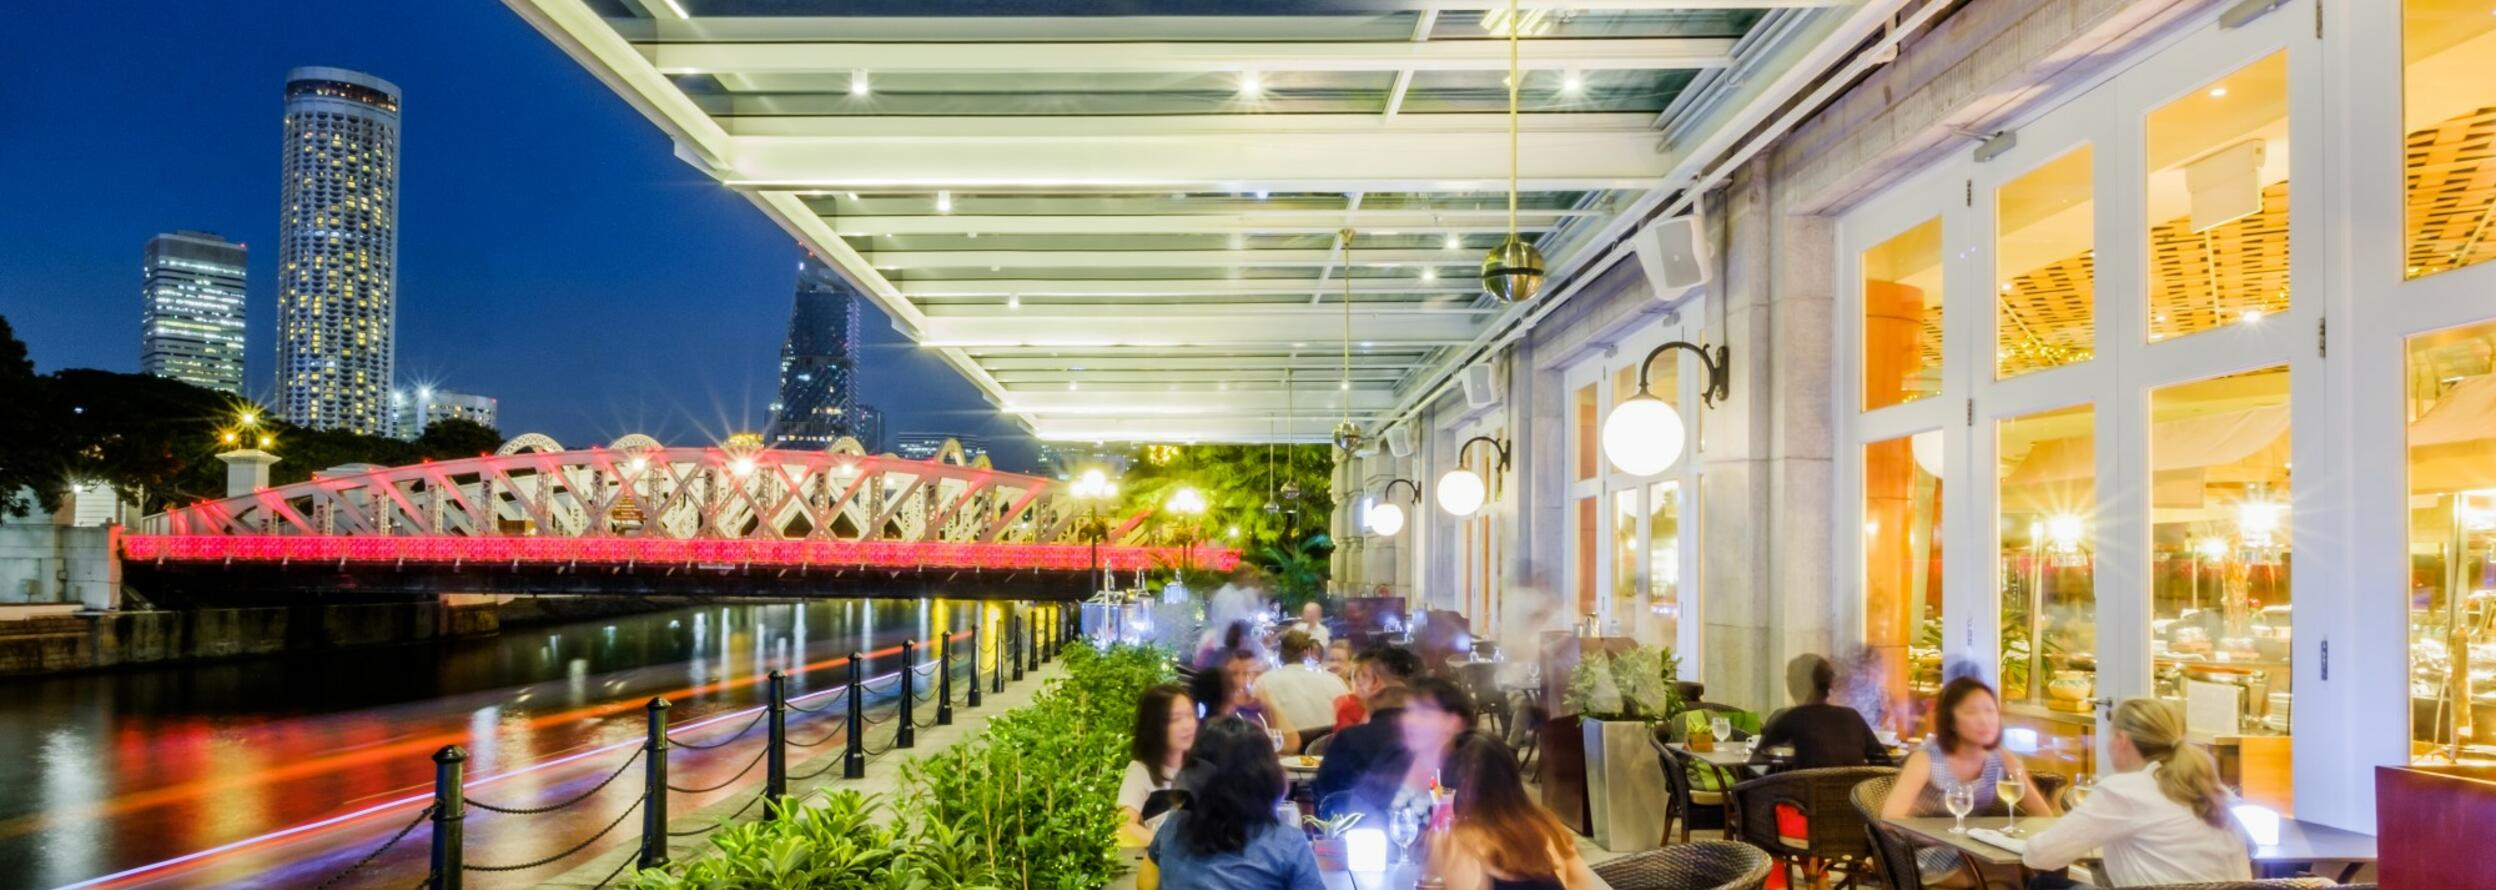 The outdoor area in the Town Restaurant with a night city view